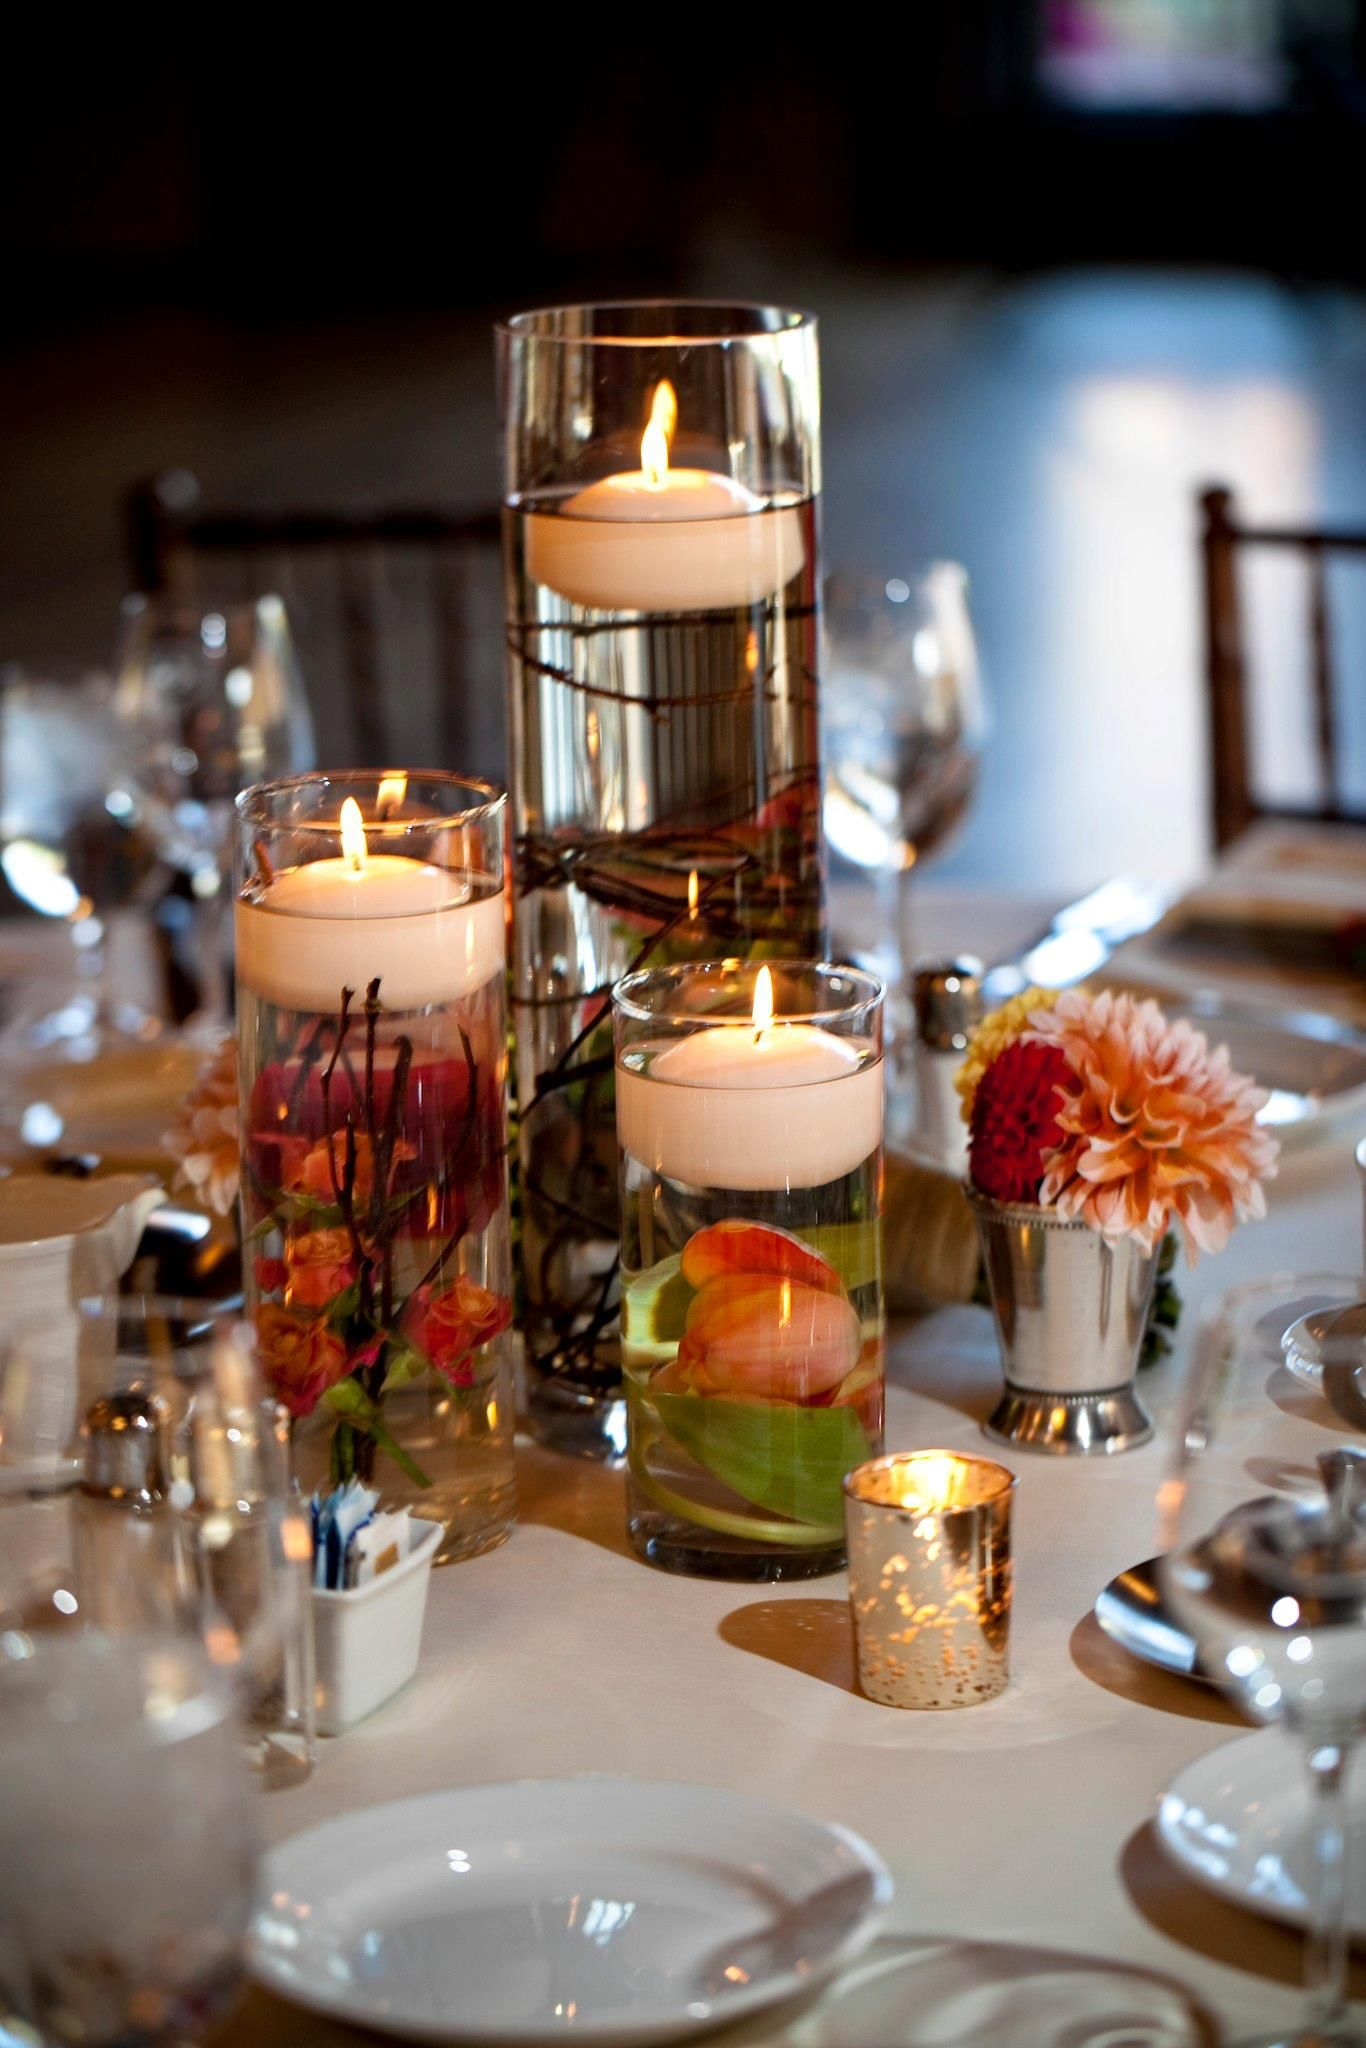 Floating Candle Wedding Centerpiece With Submerged Flowers And